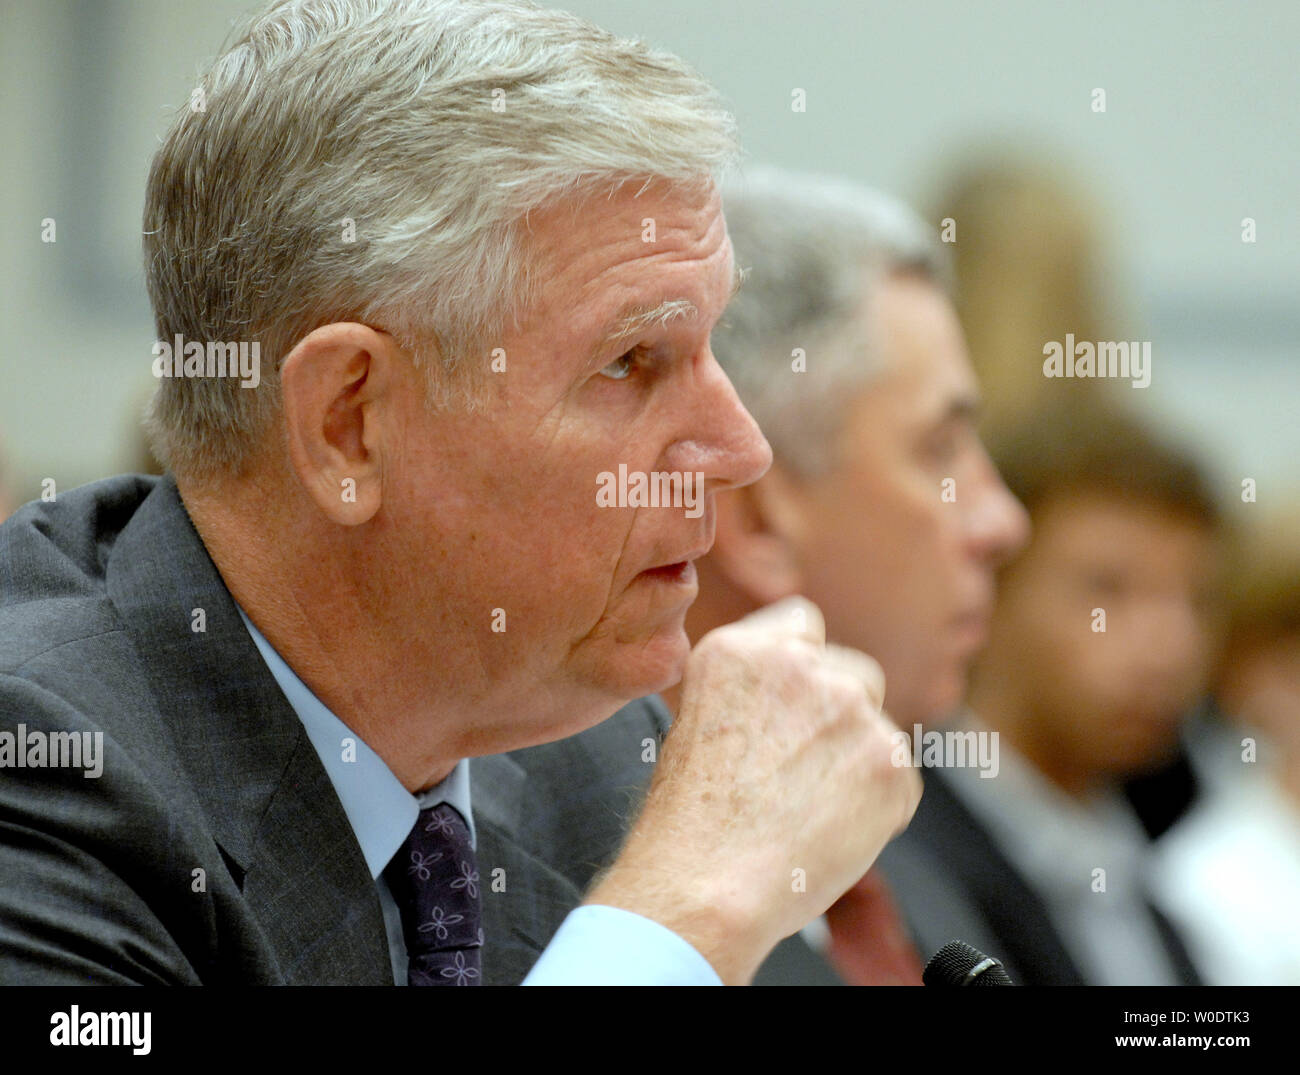 Former Chairman of the Joint Chiefs of Staff retired Gen. Richard Myers testifies before a House Oversight and Government Reform Committee hearing on 'The Tillman Fratricide: What the Leadership of the Defense Department Knew,' on Capitol Hill in Washington on August 1, 2007. Pat Tillman, a former NFL football player, was killed on April 22, 2004 in a 'friendly fire' incident while serving in the 2nd Army Ranger Battalion in Afghanistan.   (UPI Photo/Roger L. Wollenberg) - Stock Image